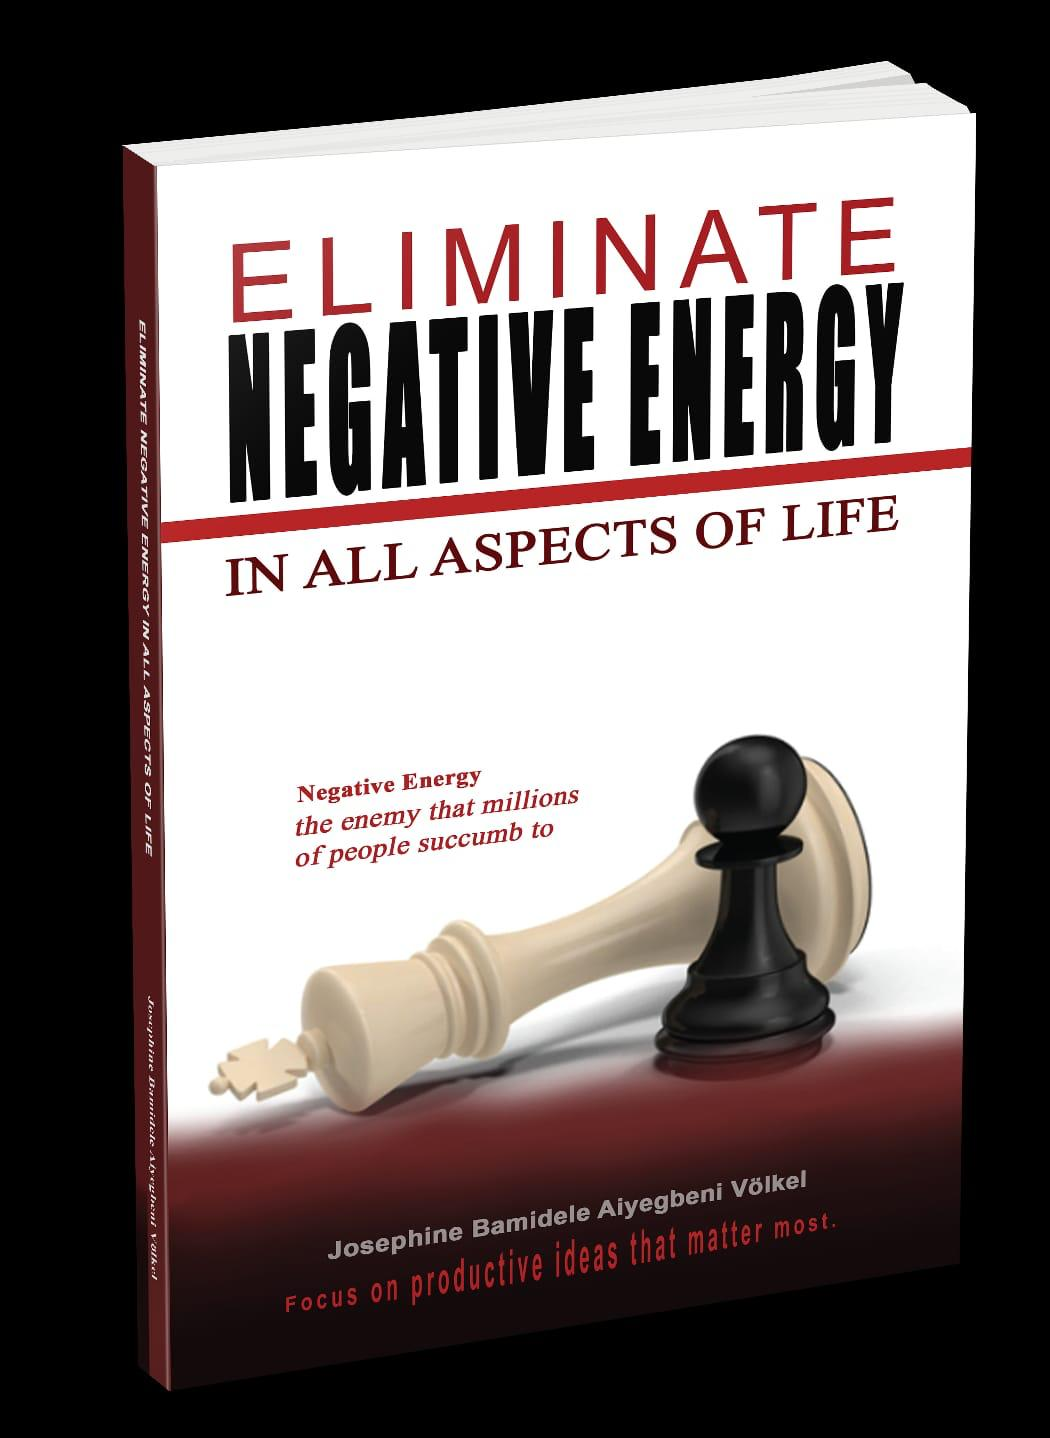 ELIMINATE NEGATIVE ENERGY